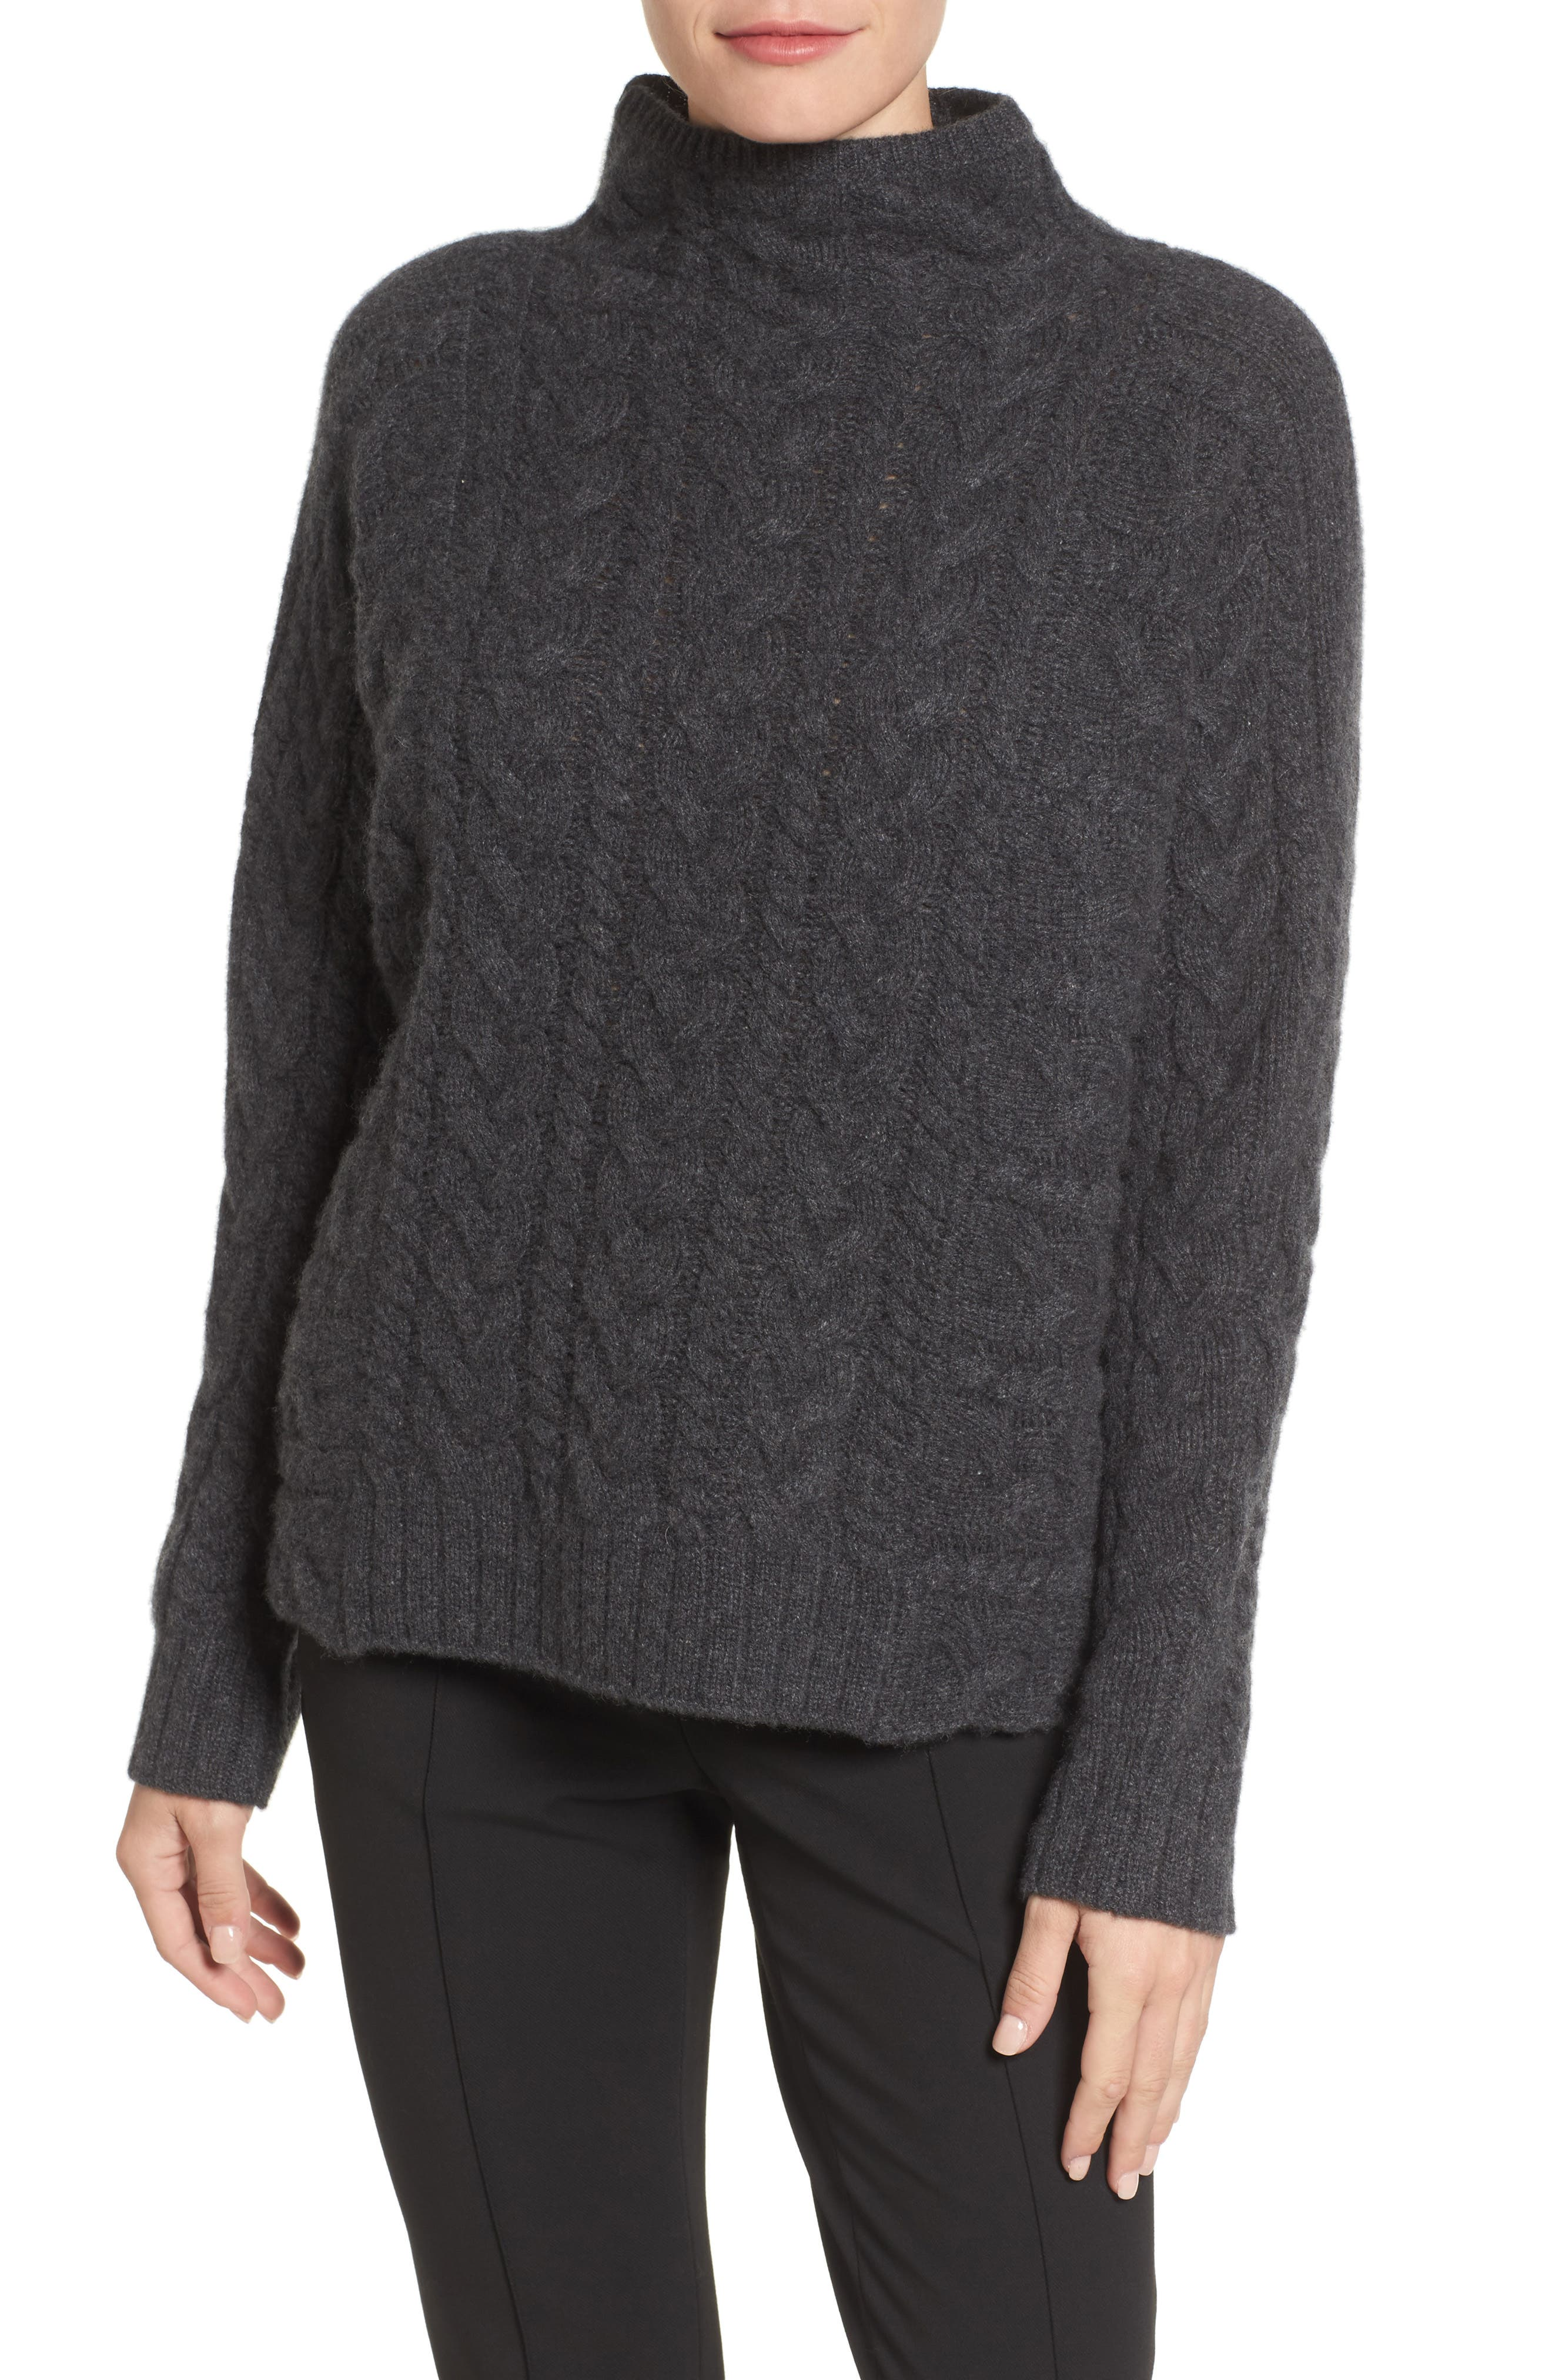 Cashmere Cable Sweater,                             Main thumbnail 1, color,                             021